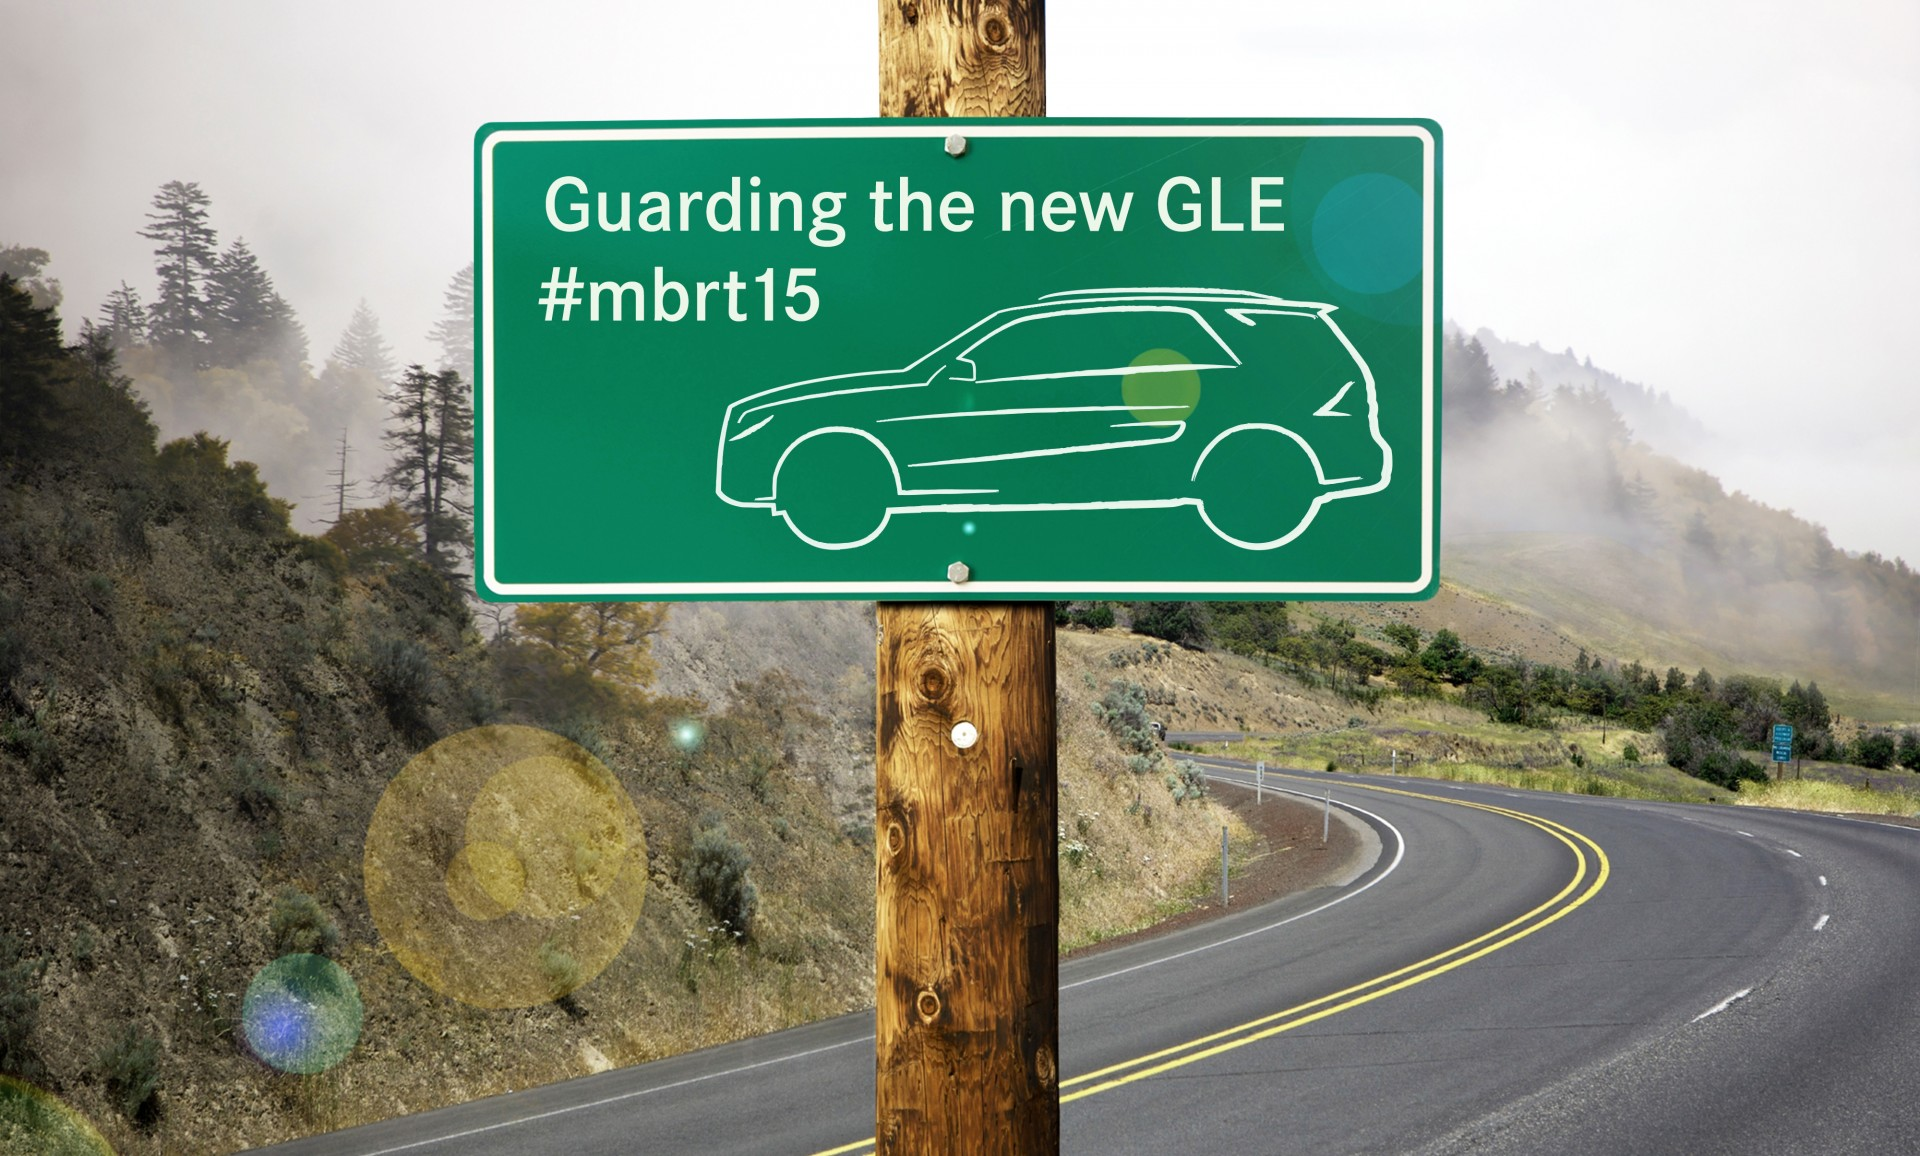 "#mbrt15 Mercedes-Benz road trip 2015 ""Guarding the new Mercedes-Benz GLE"